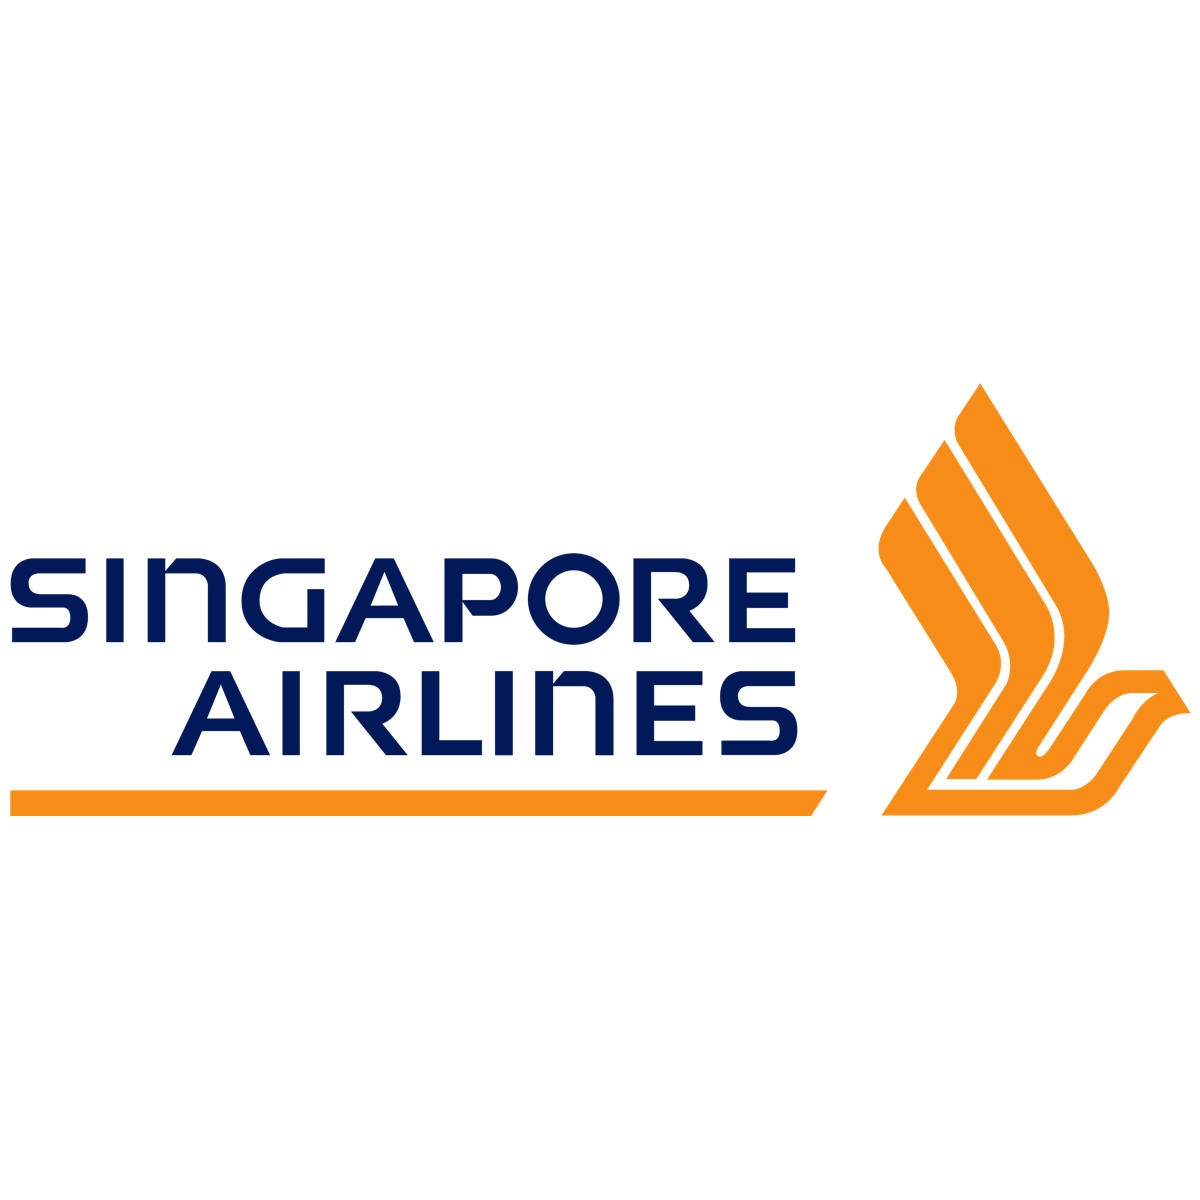 Singapore Airlines - OCBC Investment 2017-03-27: Strong load factors in February